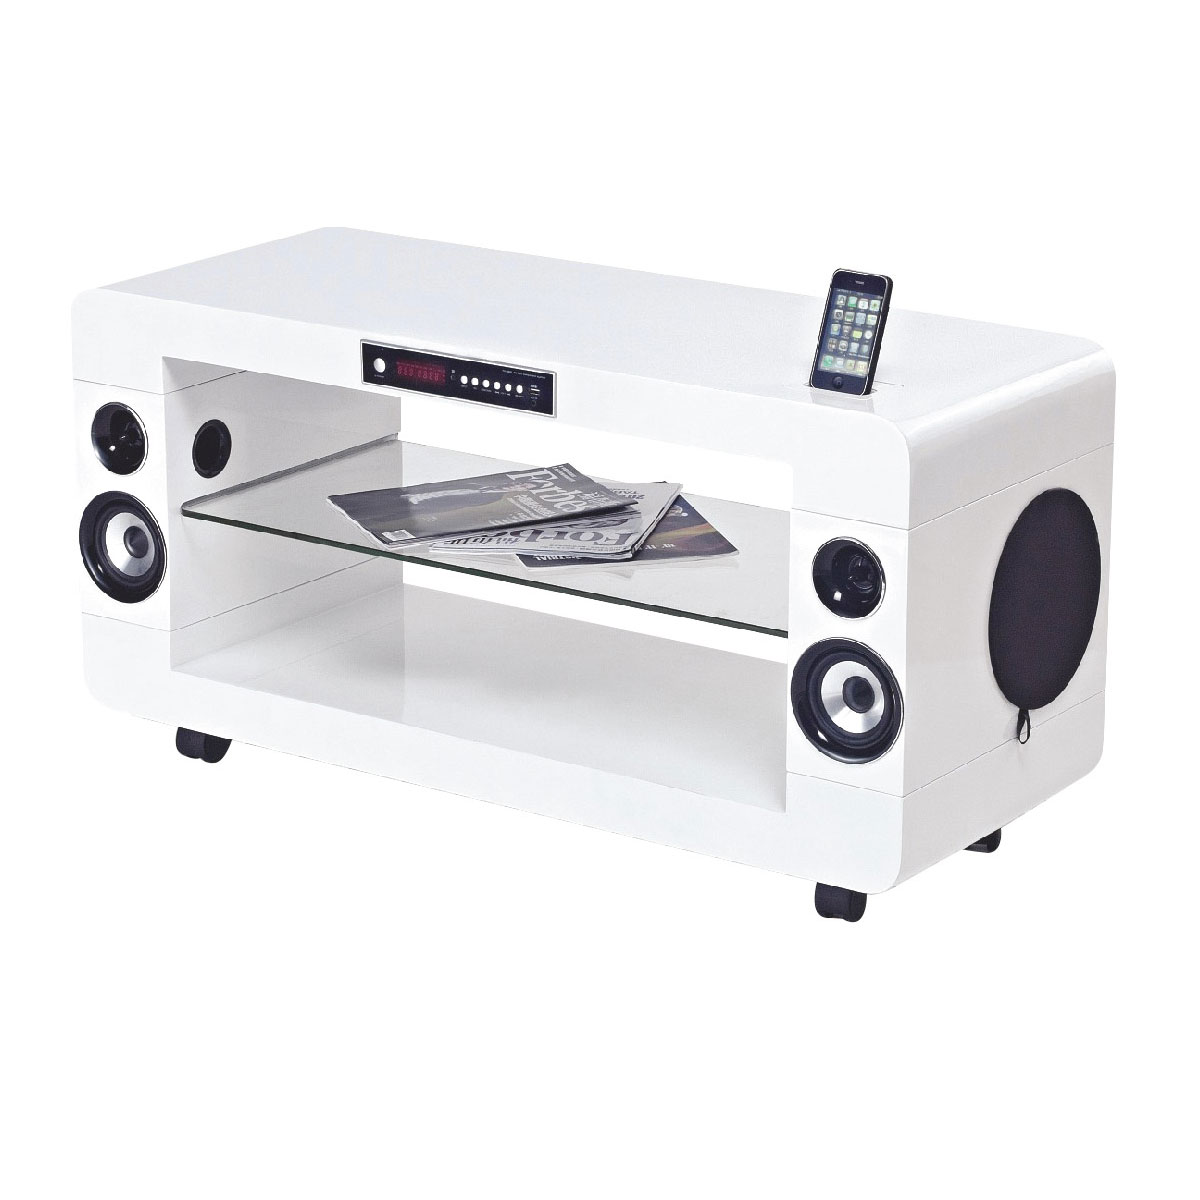 ensemble home cinma soundvision sv 230 w blanc meuble home cinma 21 avec station d